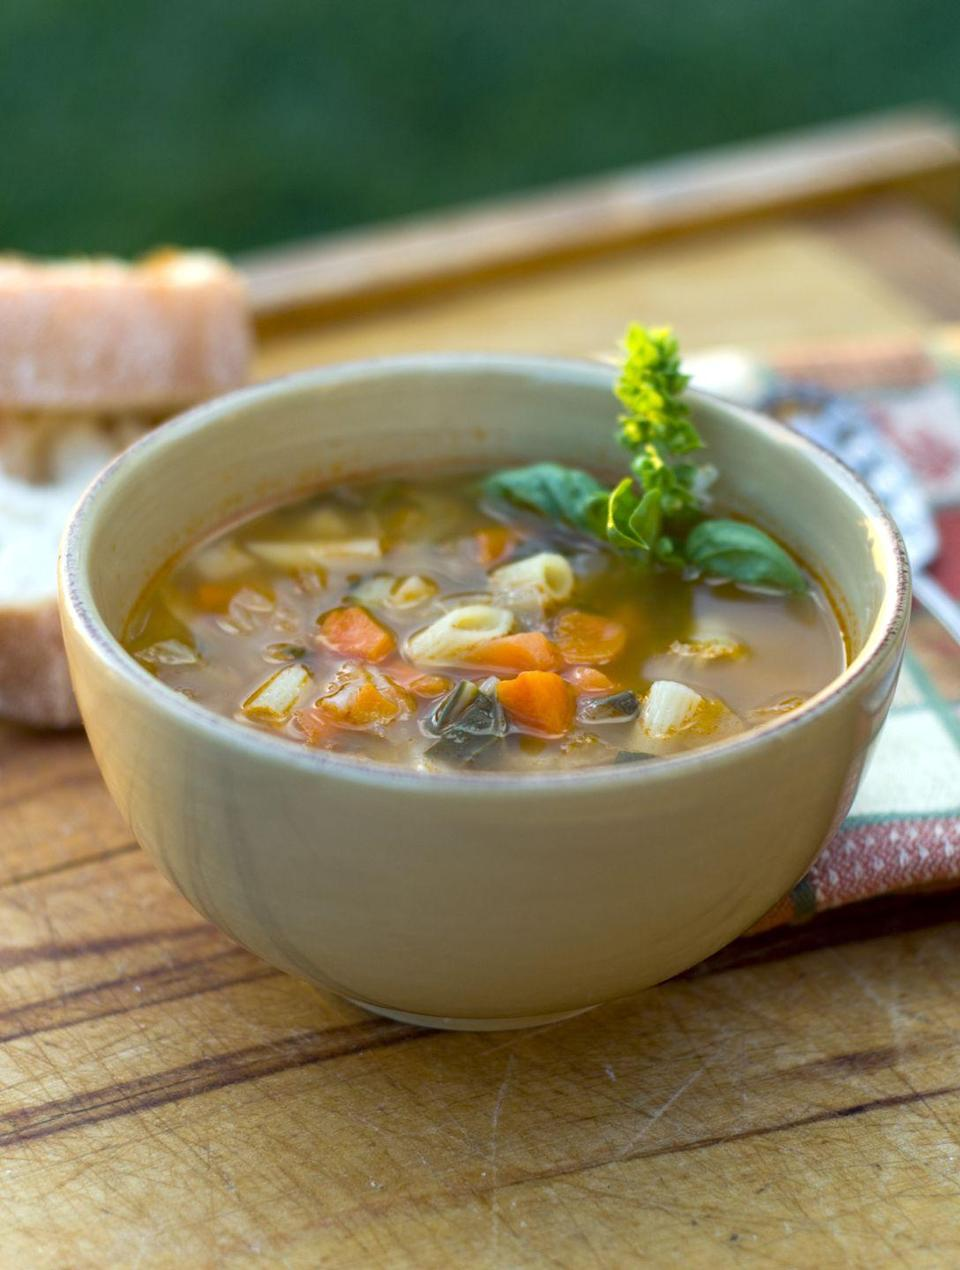 "<p><strong>Opt for a brothy soup like minestrone that has a ton of vegetables to help keep you fueled and satisfied.</strong> Read more about our <a href=""https://www.goodhousekeeping.com/food-products/g32613278/best-canned-soups/"" rel=""nofollow noopener"" target=""_blank"" data-ylk=""slk:favorite healthy soup brands here"" class=""link rapid-noclick-resp"">favorite healthy soup brands here</a>.</p>"